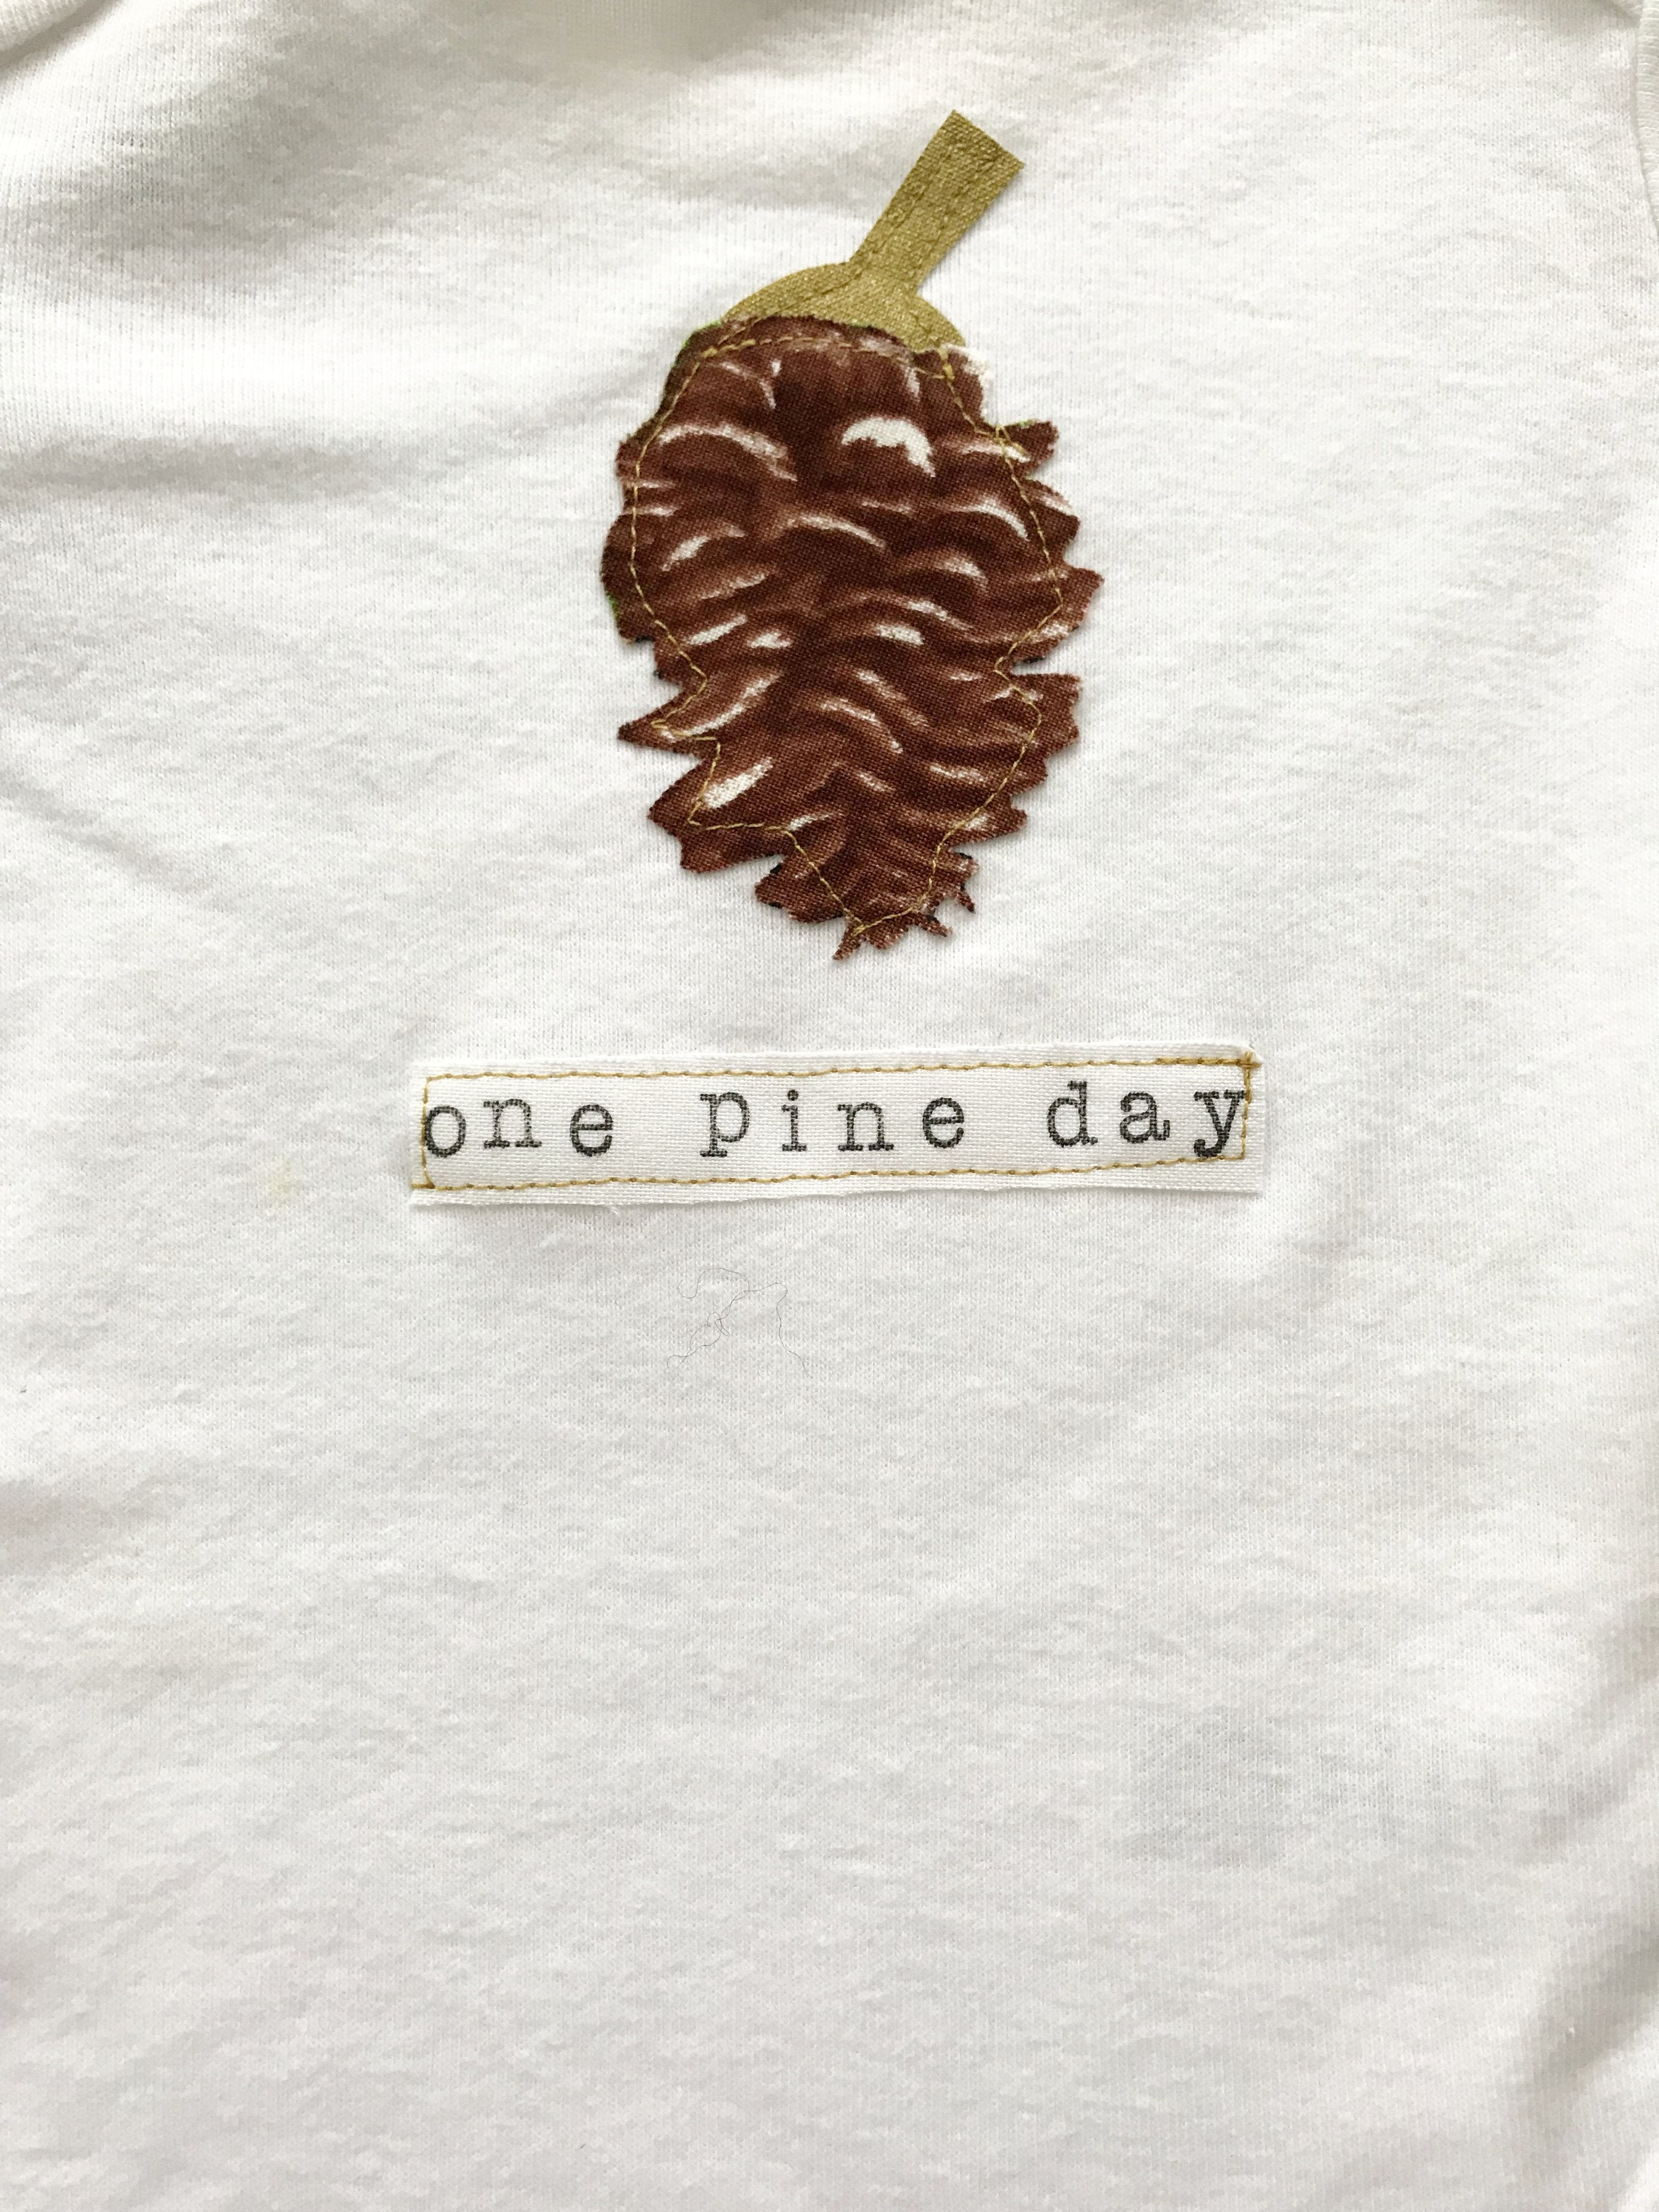 One Pine Day